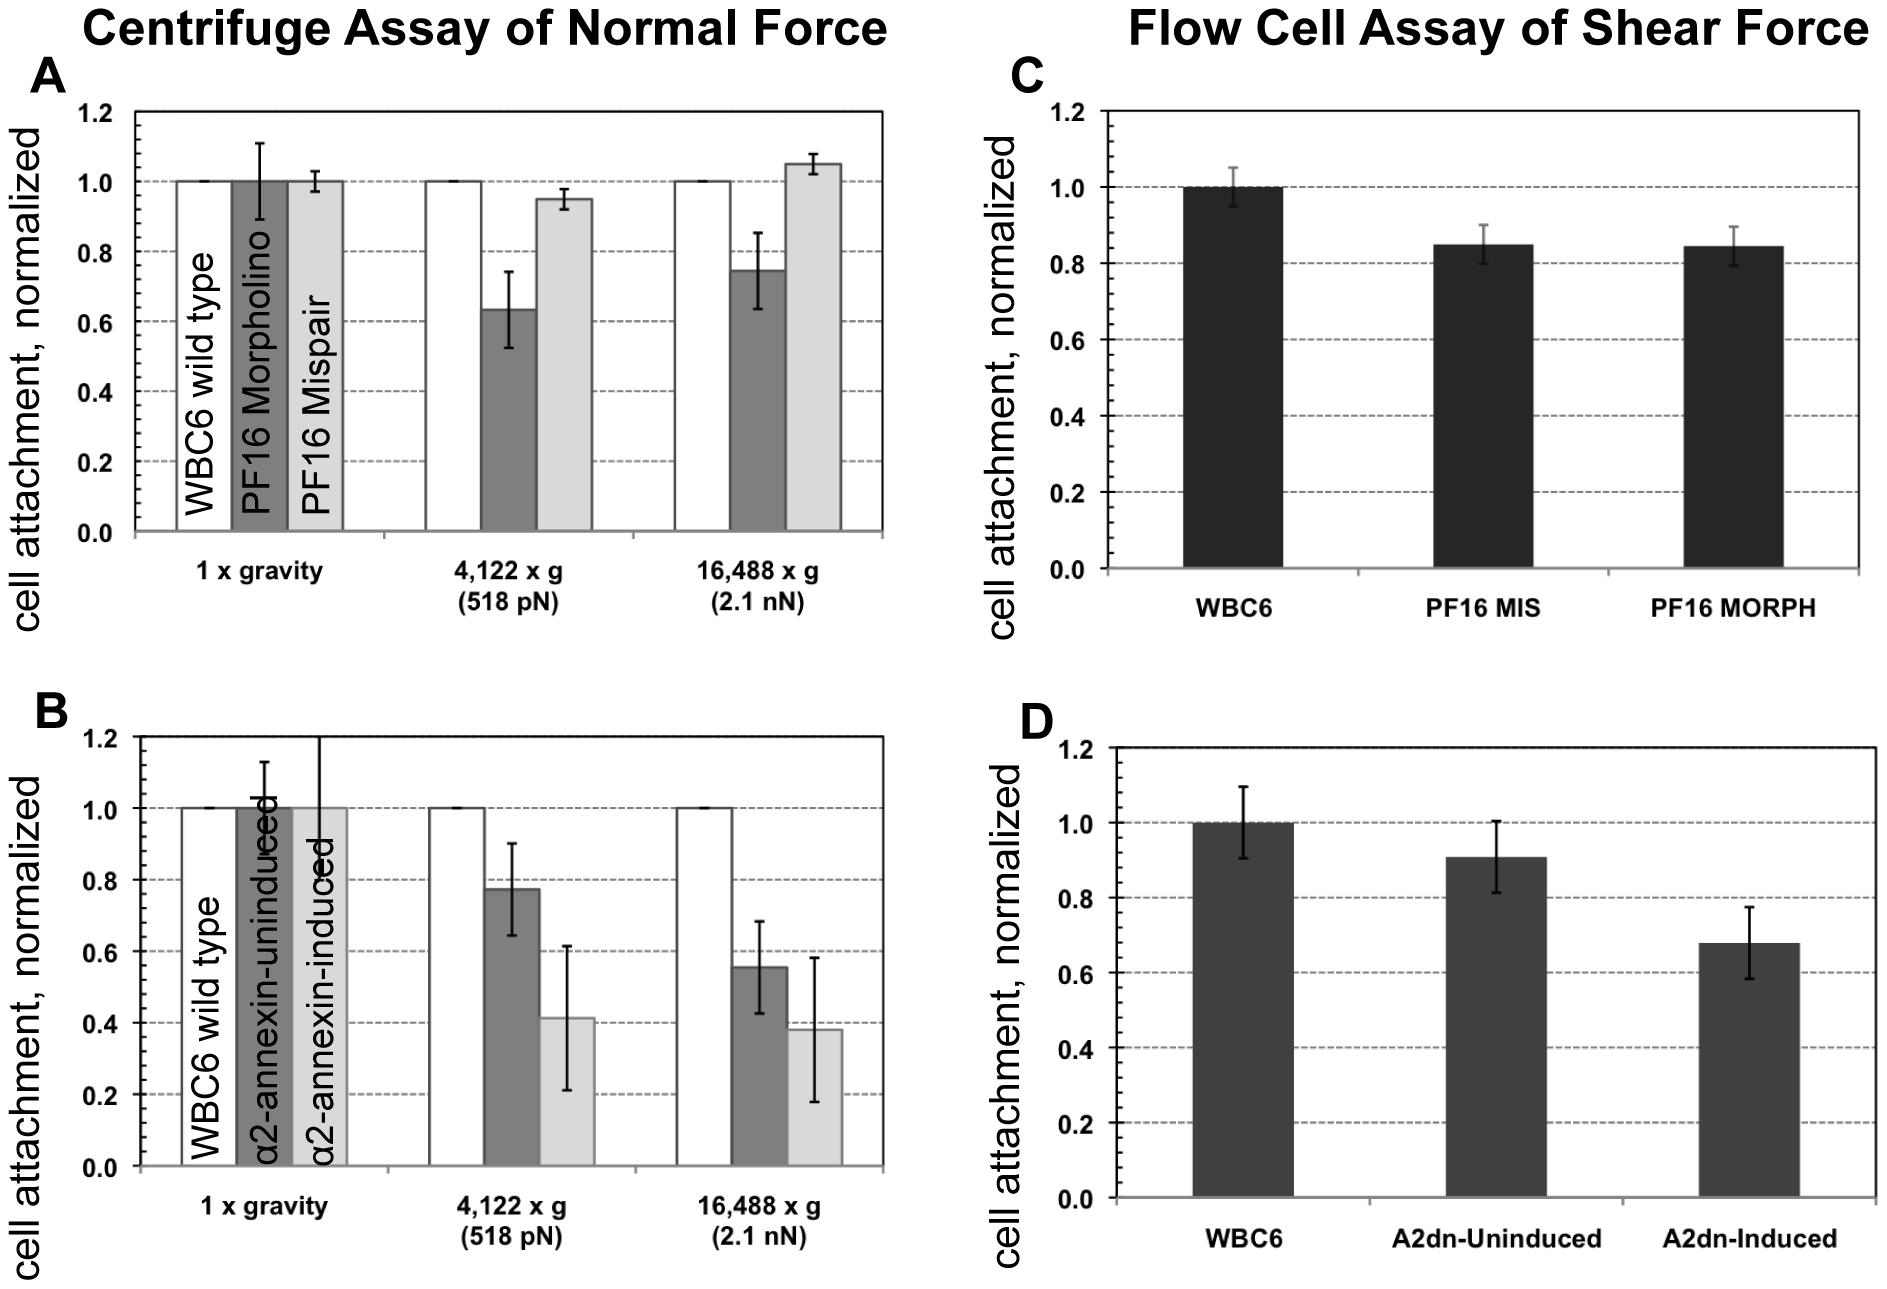 Trophozoites are able to maintain attachment when challenged with normal and shear forces, despite reduced flagellar beat frequency or diminished flagellar amplitude.